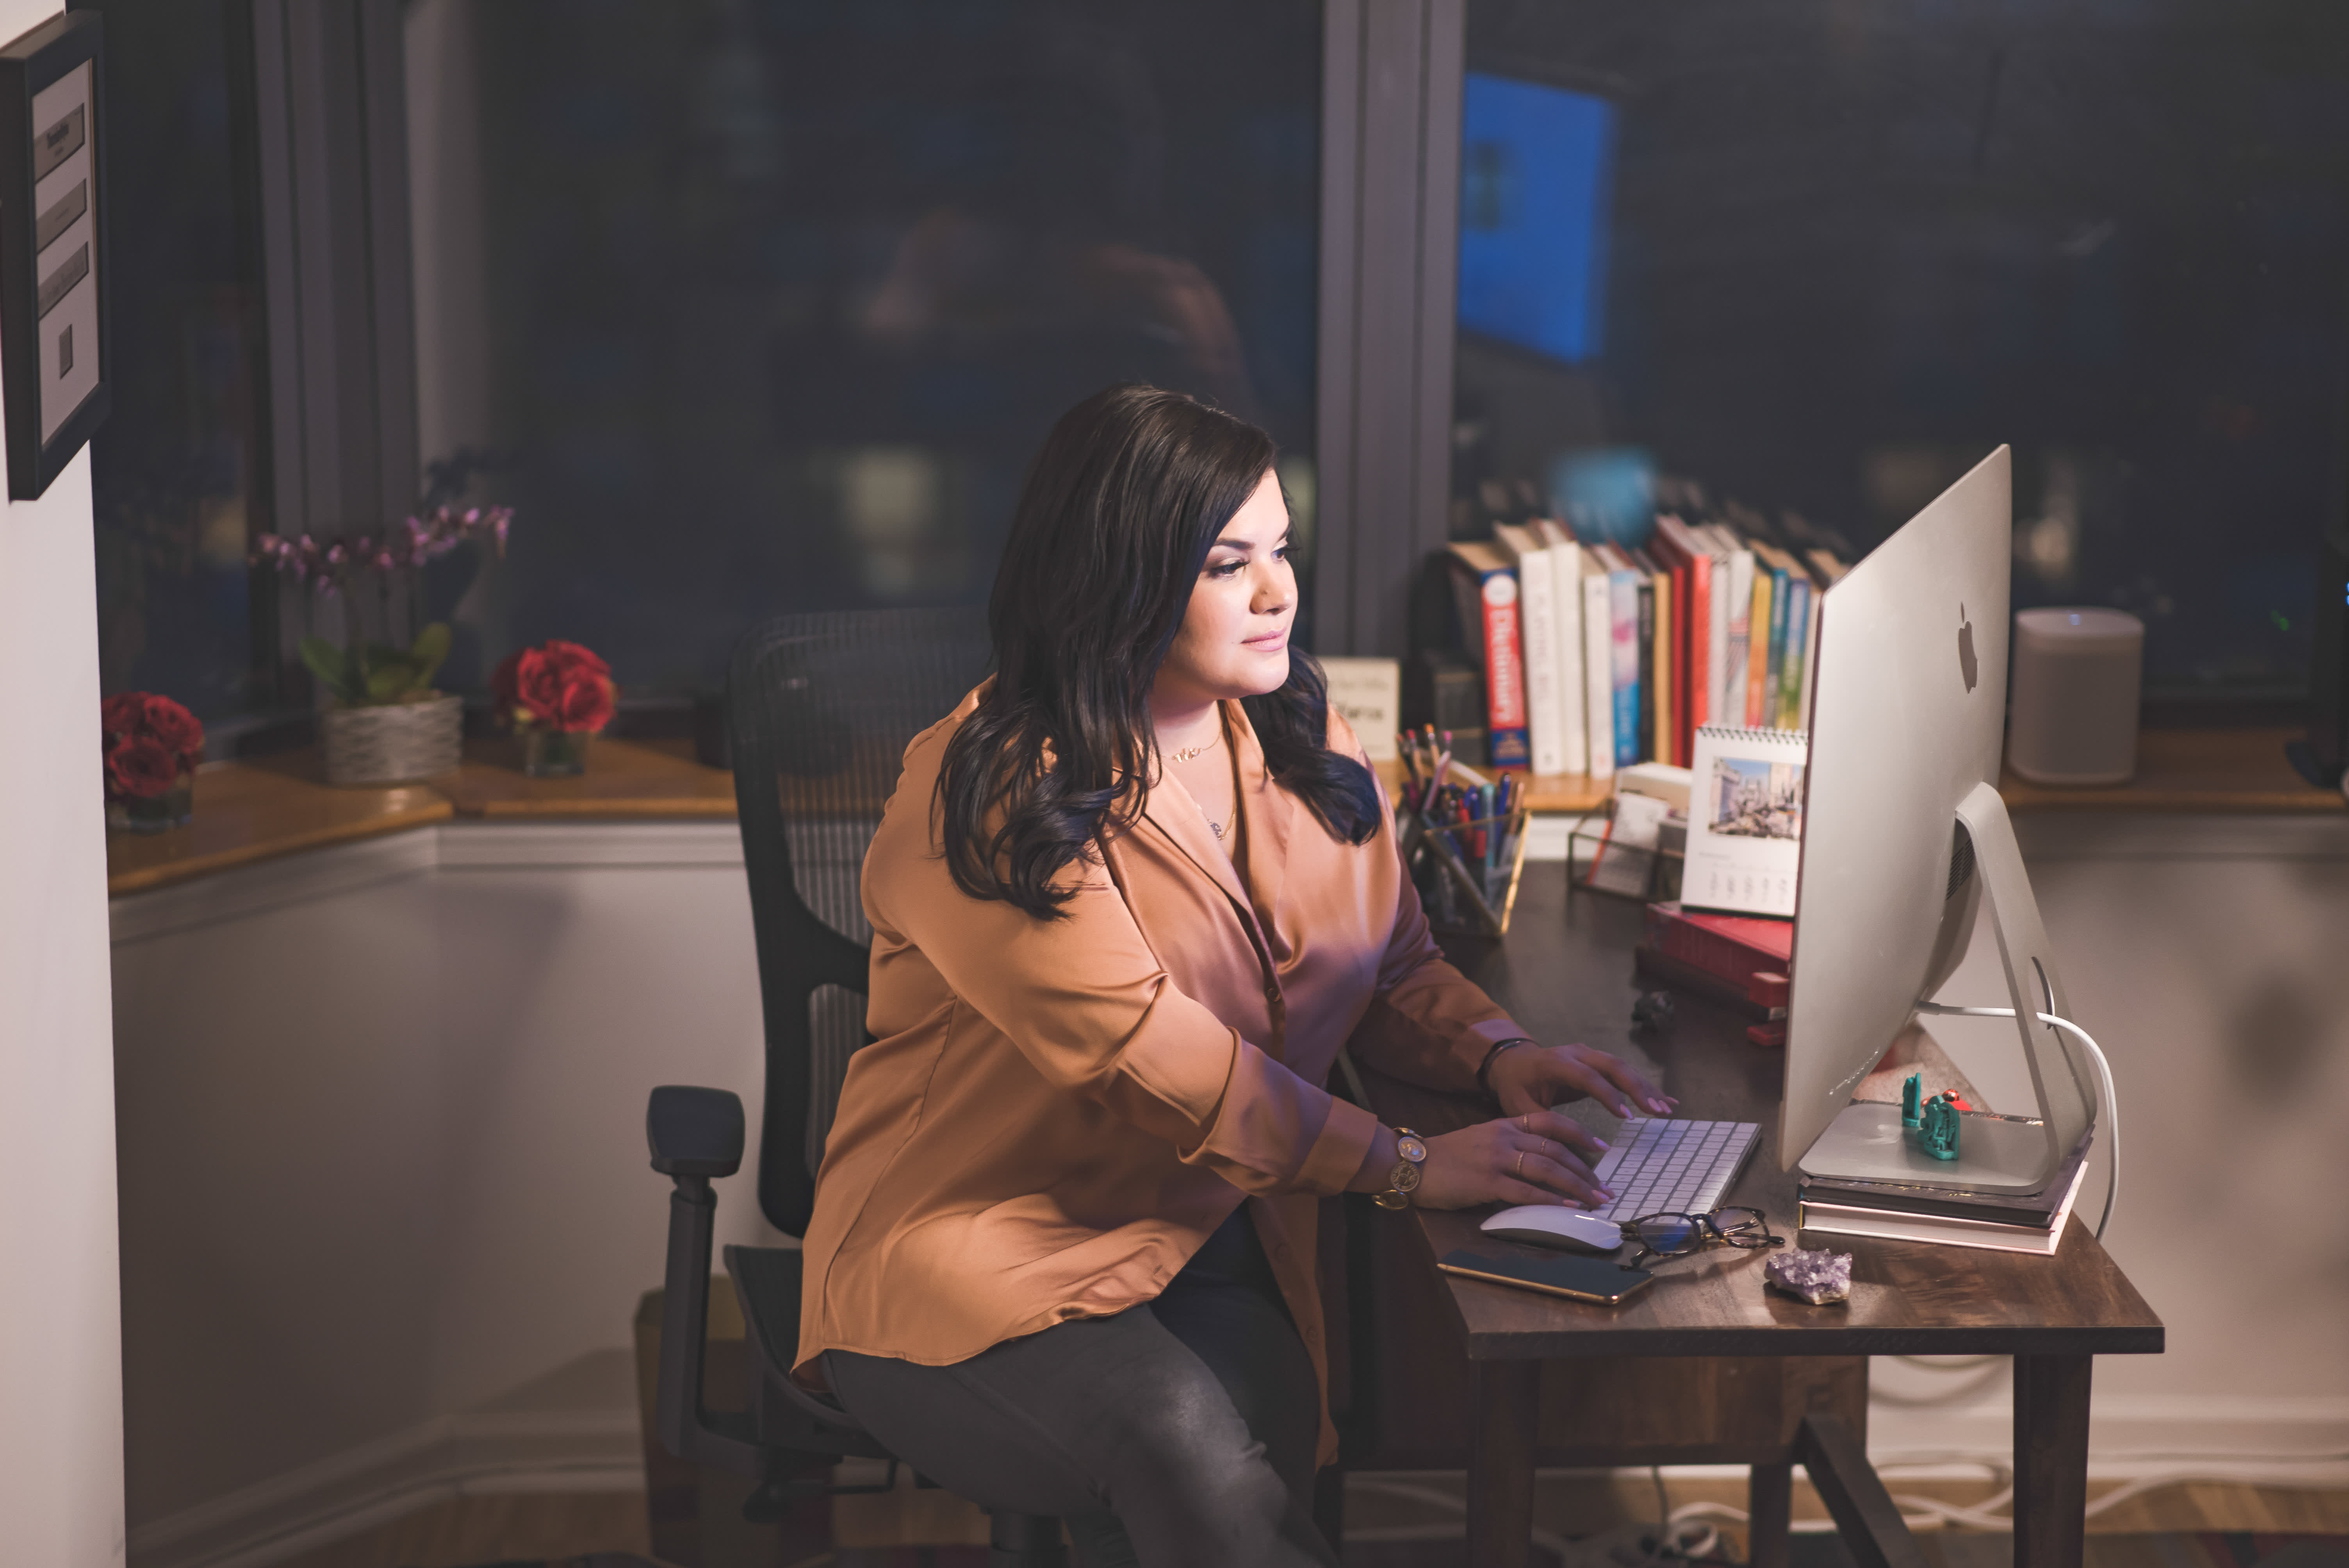 Top 3 tips for starting a successful side hustle, from someone who made 6 figures in 3 months